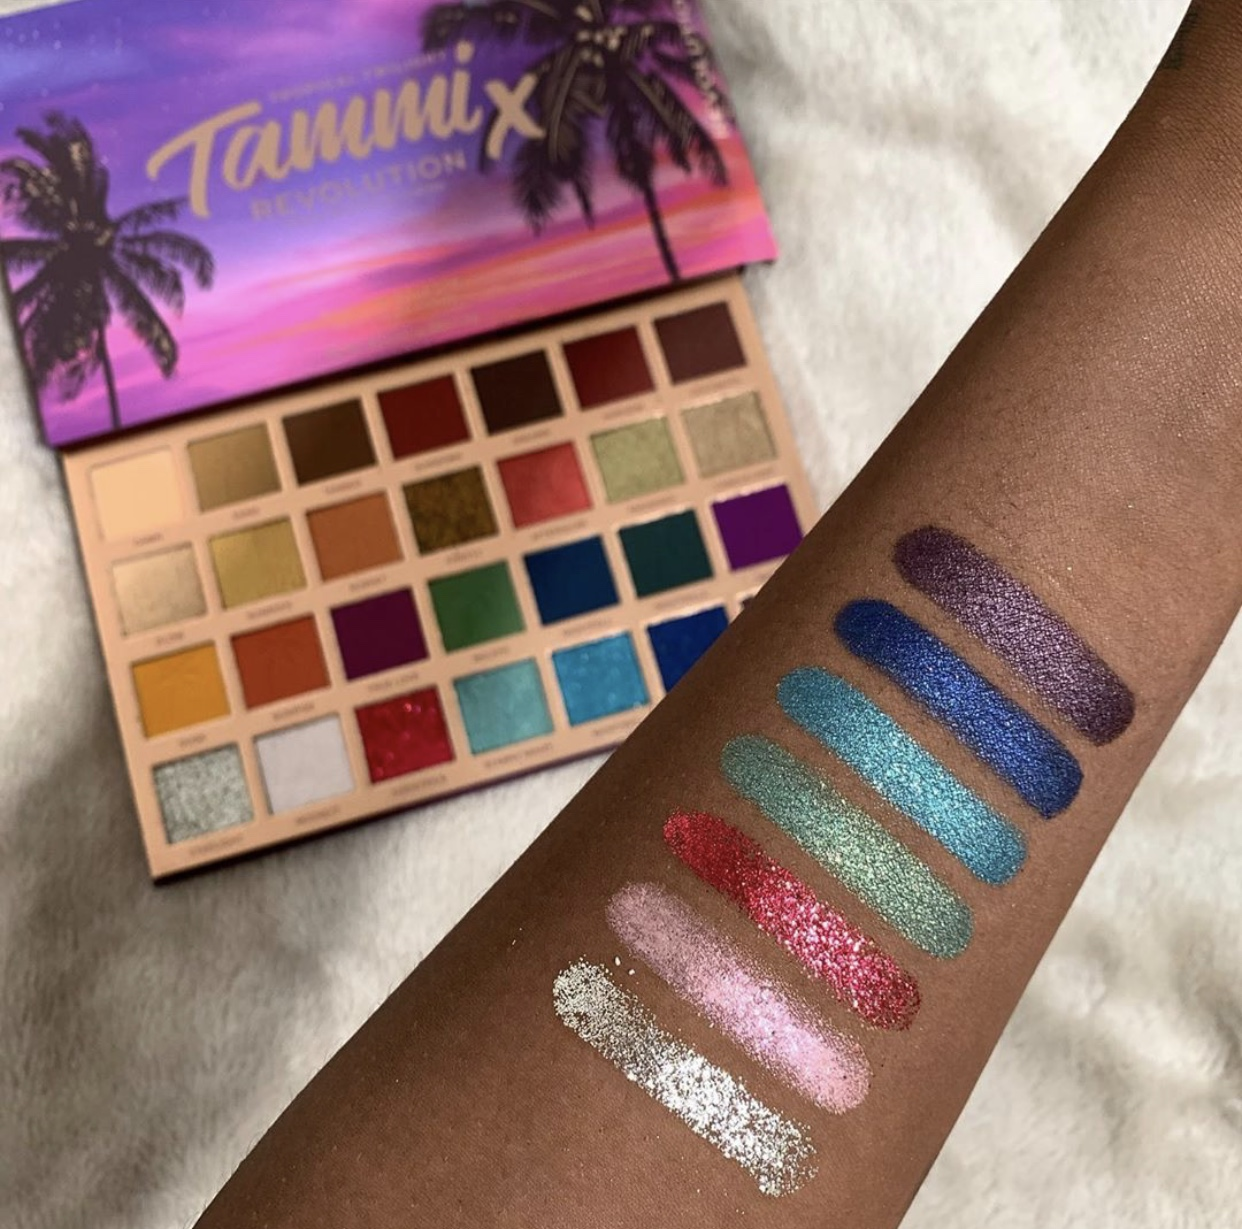 Revolution Tammi Tropical Twilight Collection Reveal!